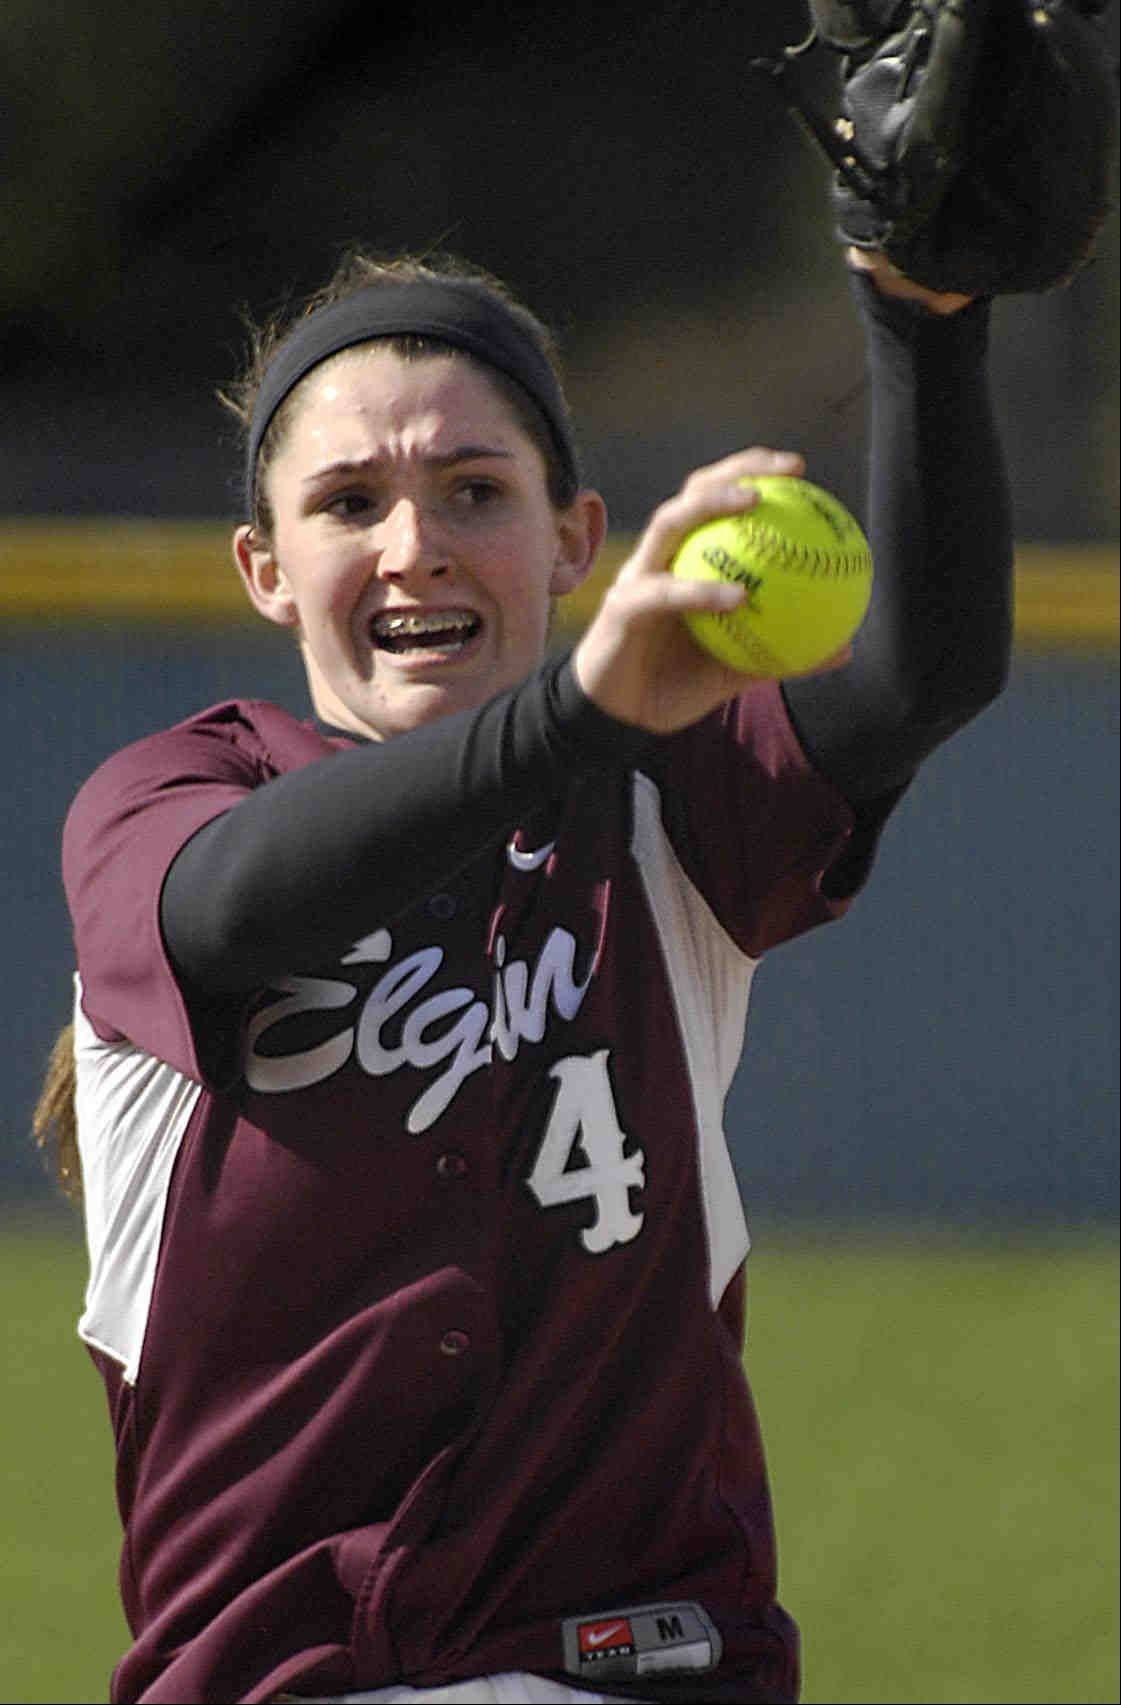 Elgin's Jennah Perryman struck out 17 Larkin batters and allowed no hits, while hitting two home runs Wednesday in Elgin.